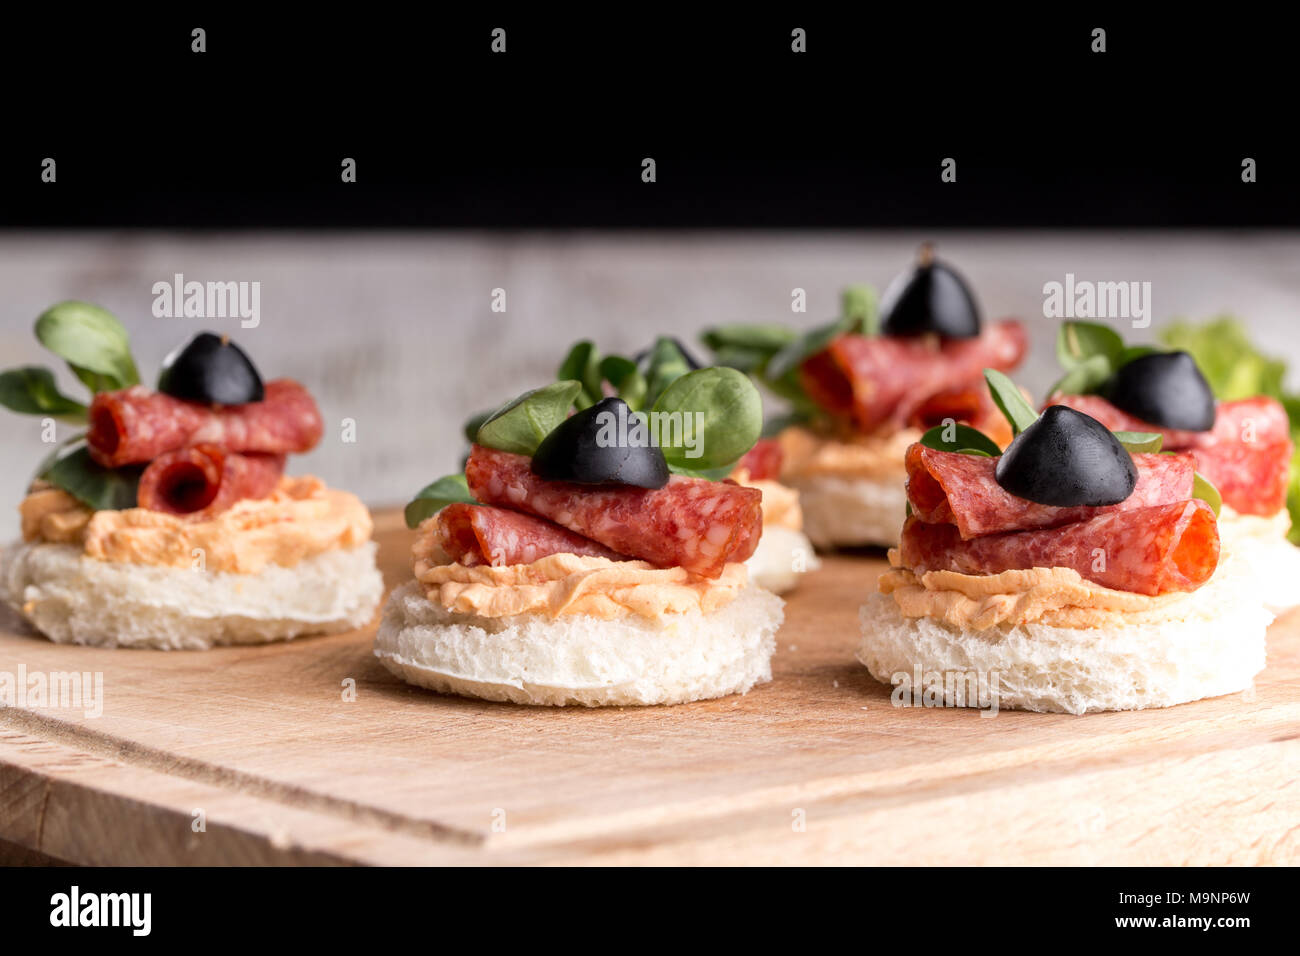 Delicious canapes with salami and spices on a wooden background - Stock Image